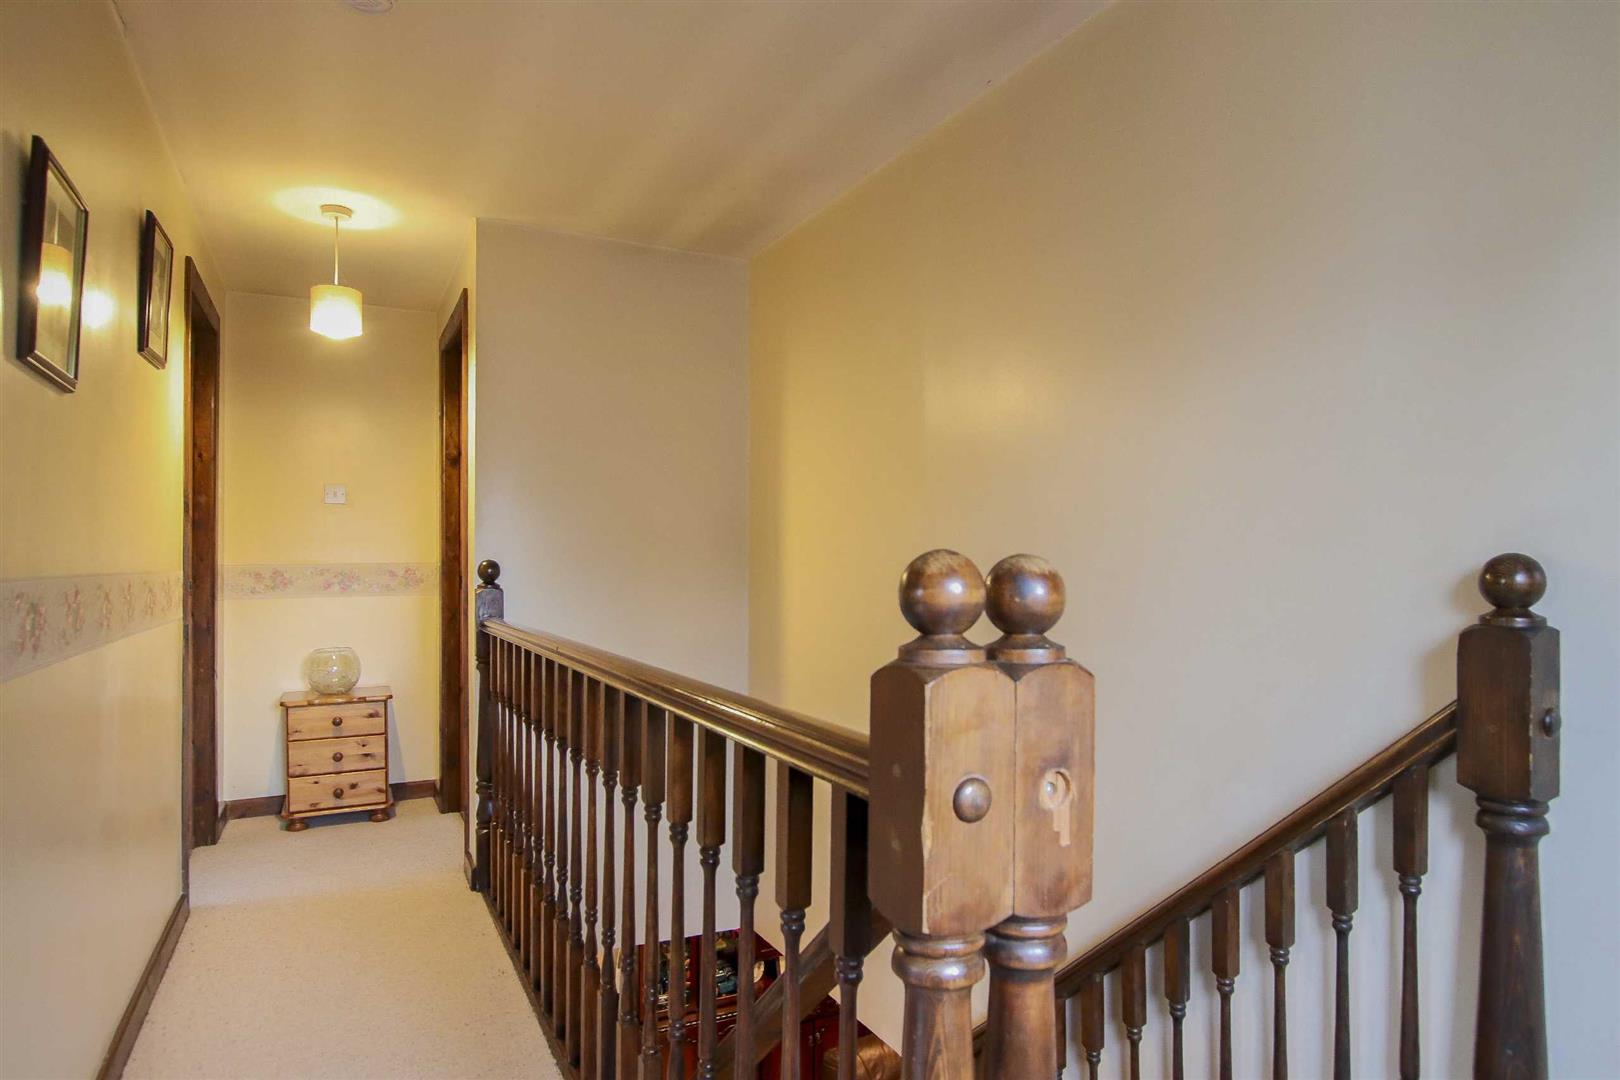 9 Bedroom Barn Conversion For Sale - Image 21